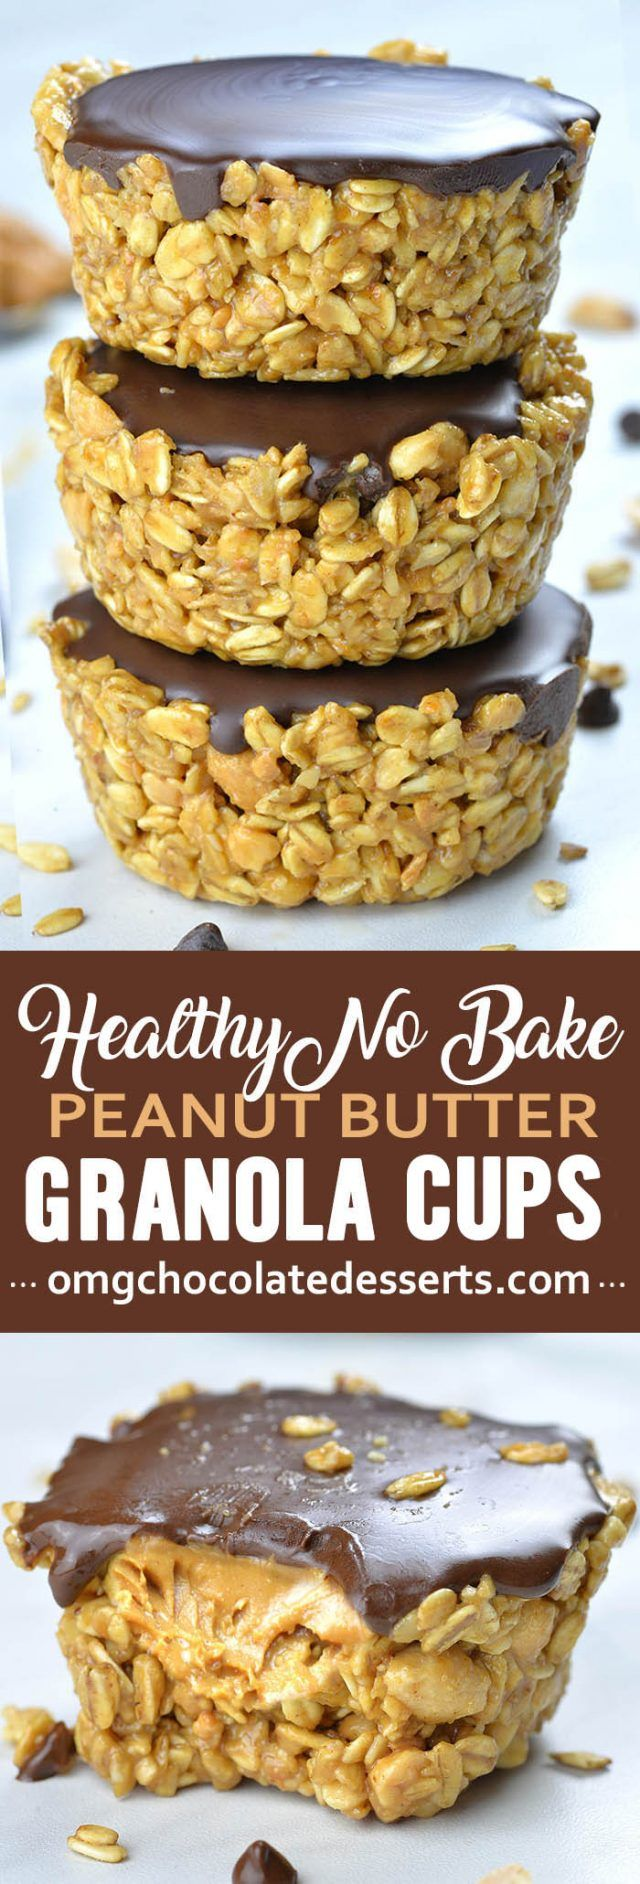 No Bake Peanut Butter Granola Cups images